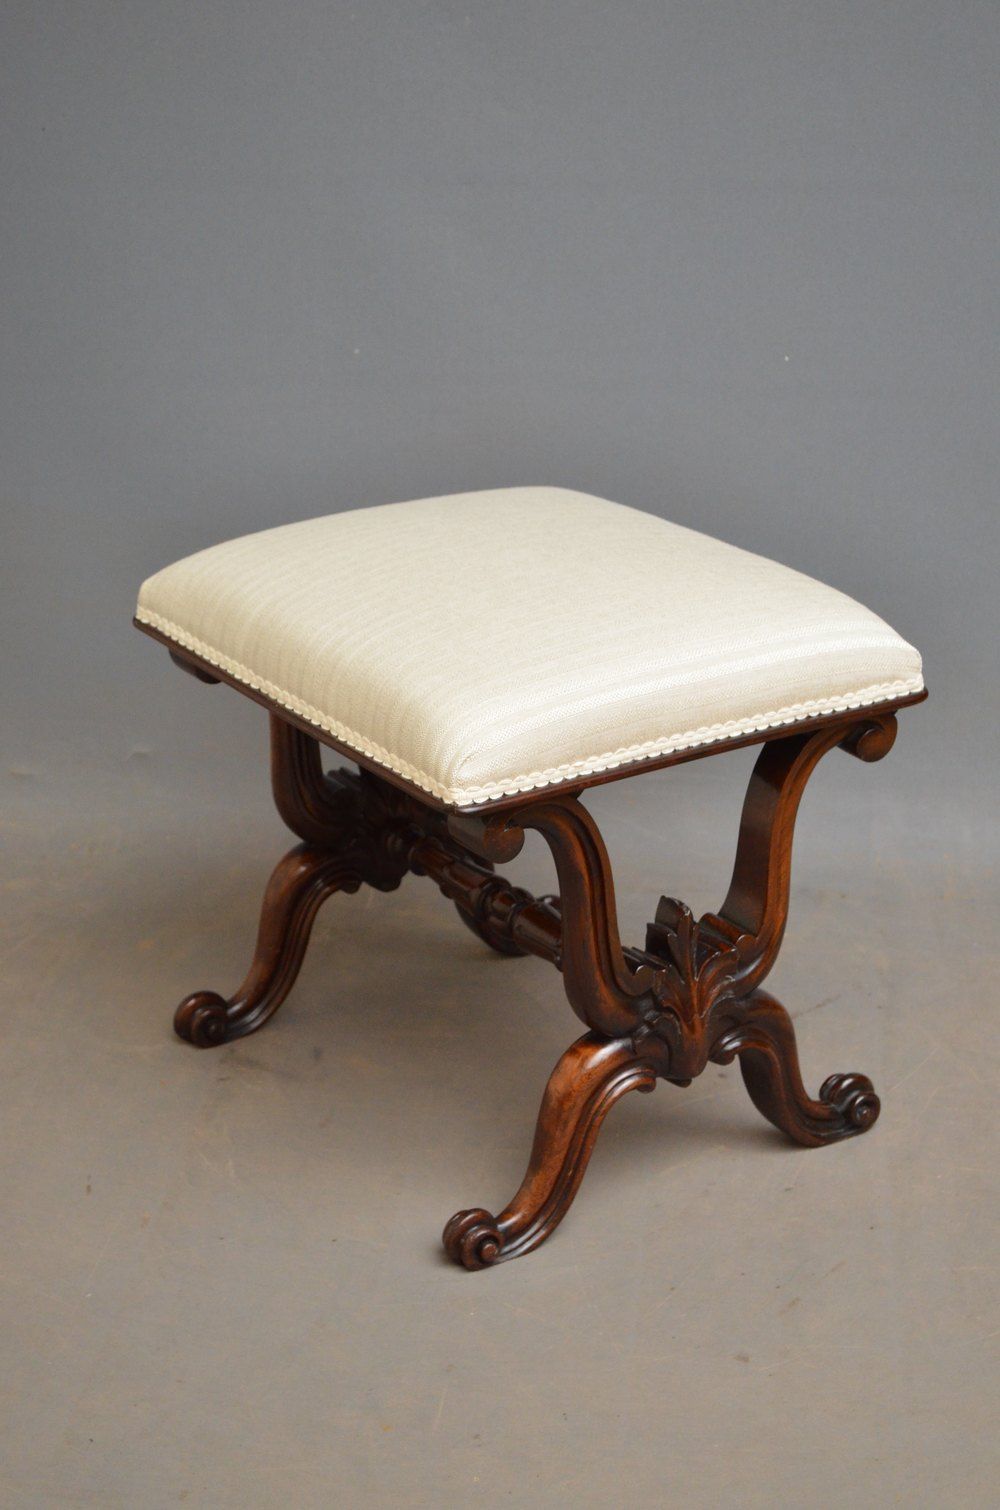 Dressing Table Chairs And Stools: William IV Rosewood Dressing Table Stool